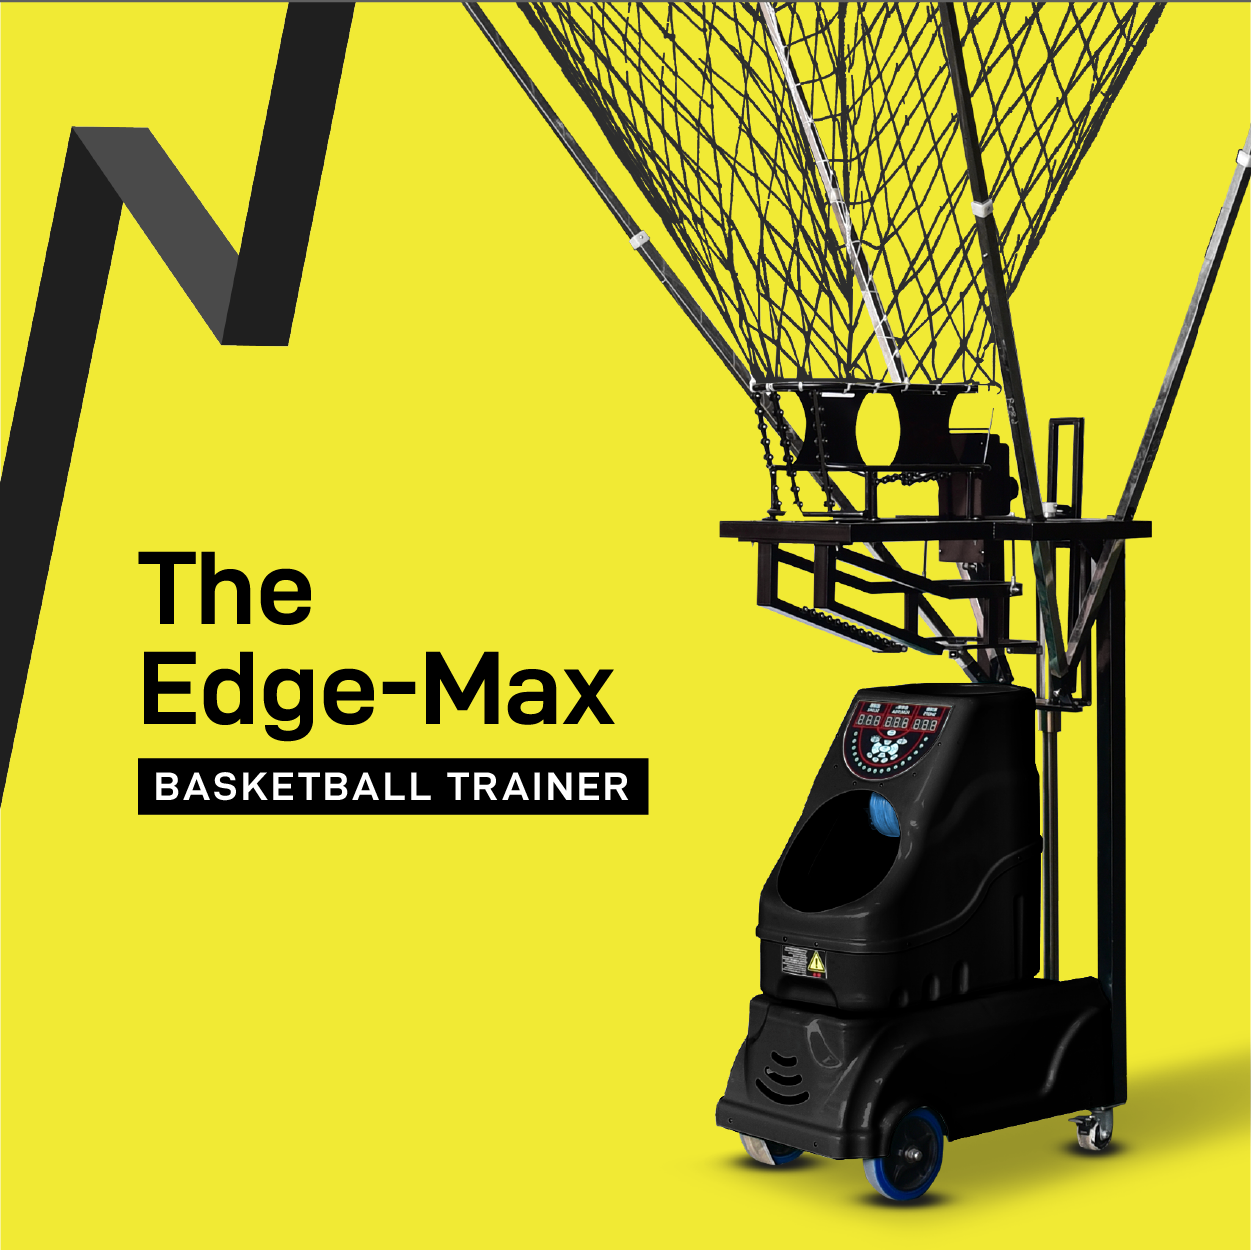 The Edge Max Basketball Trainer